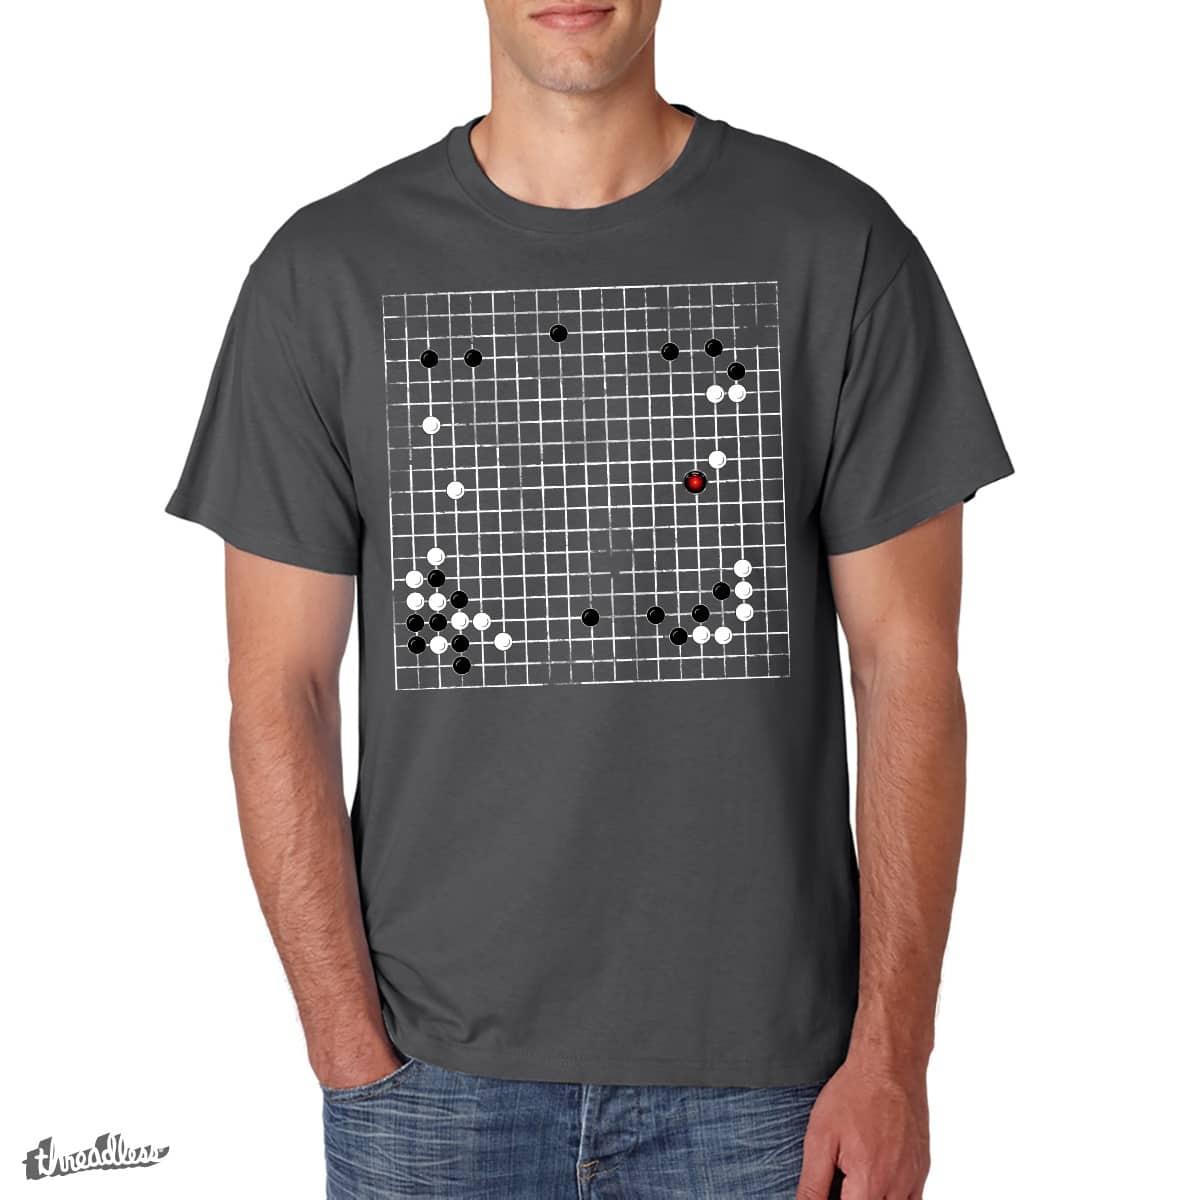 37th Move by theonlysandman on Threadless